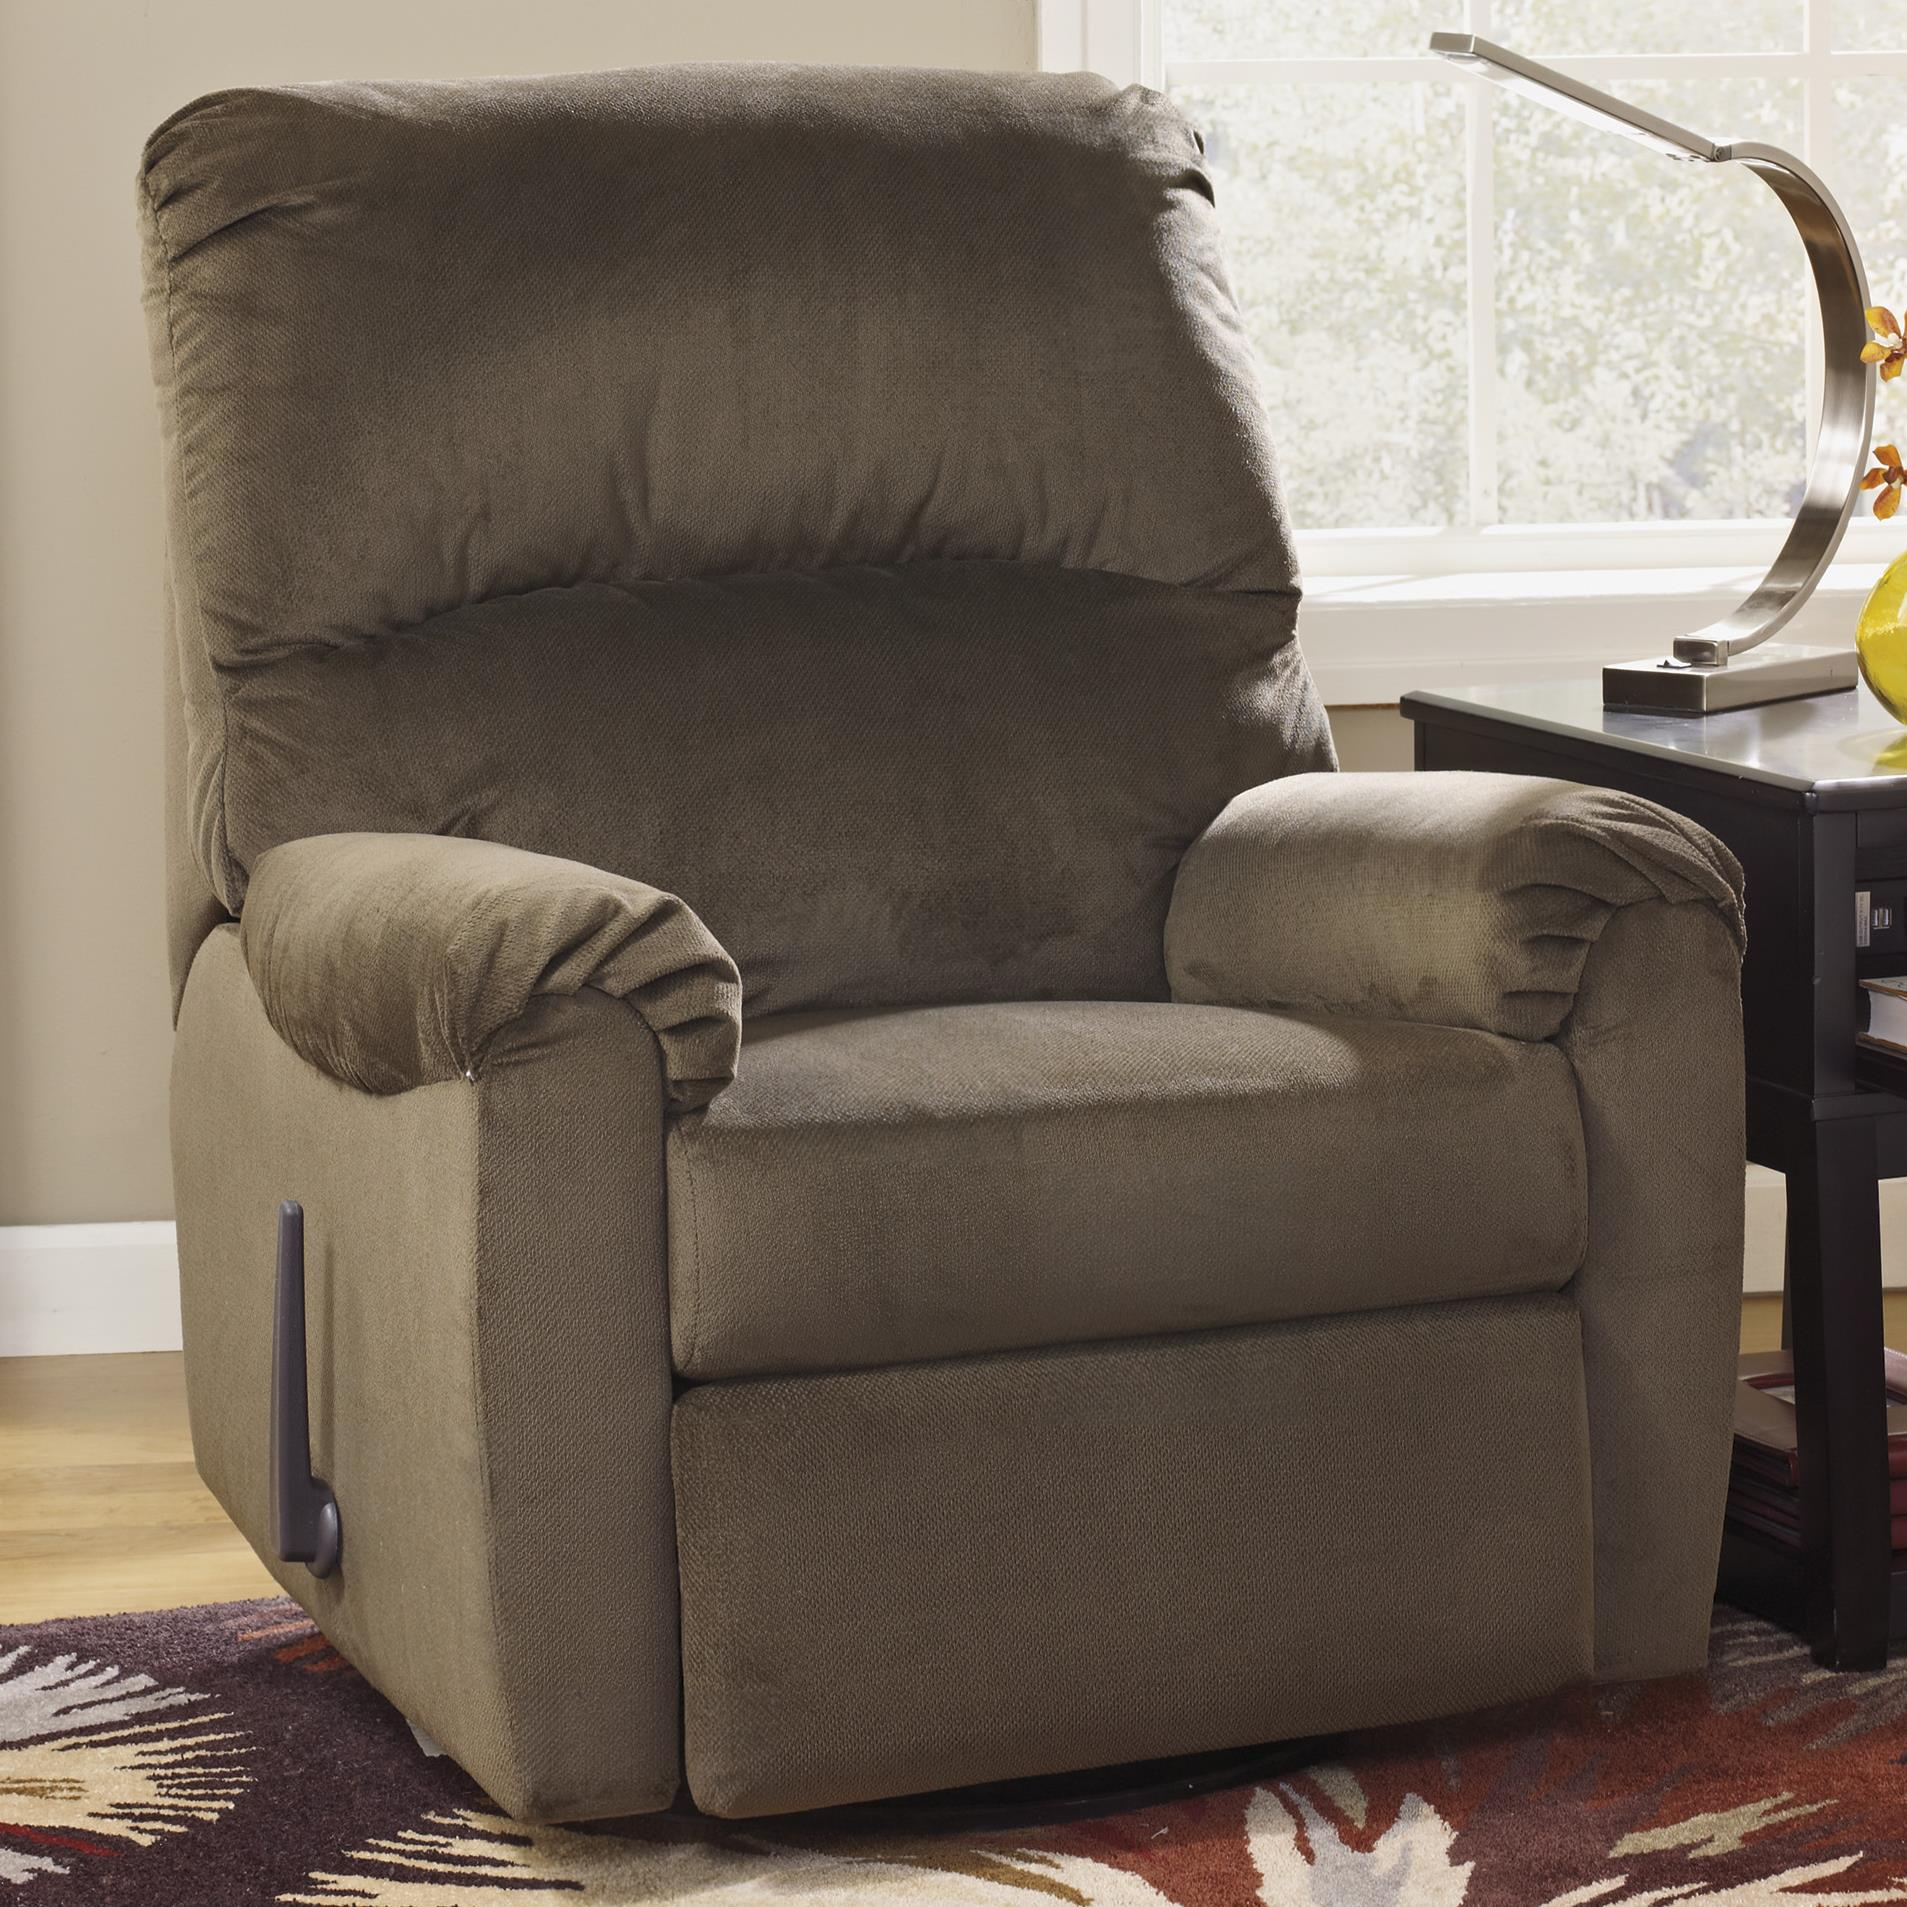 Signature Design by Ashley McFarin - Umber Swivel Glider Recliner - Item Number: 5500061